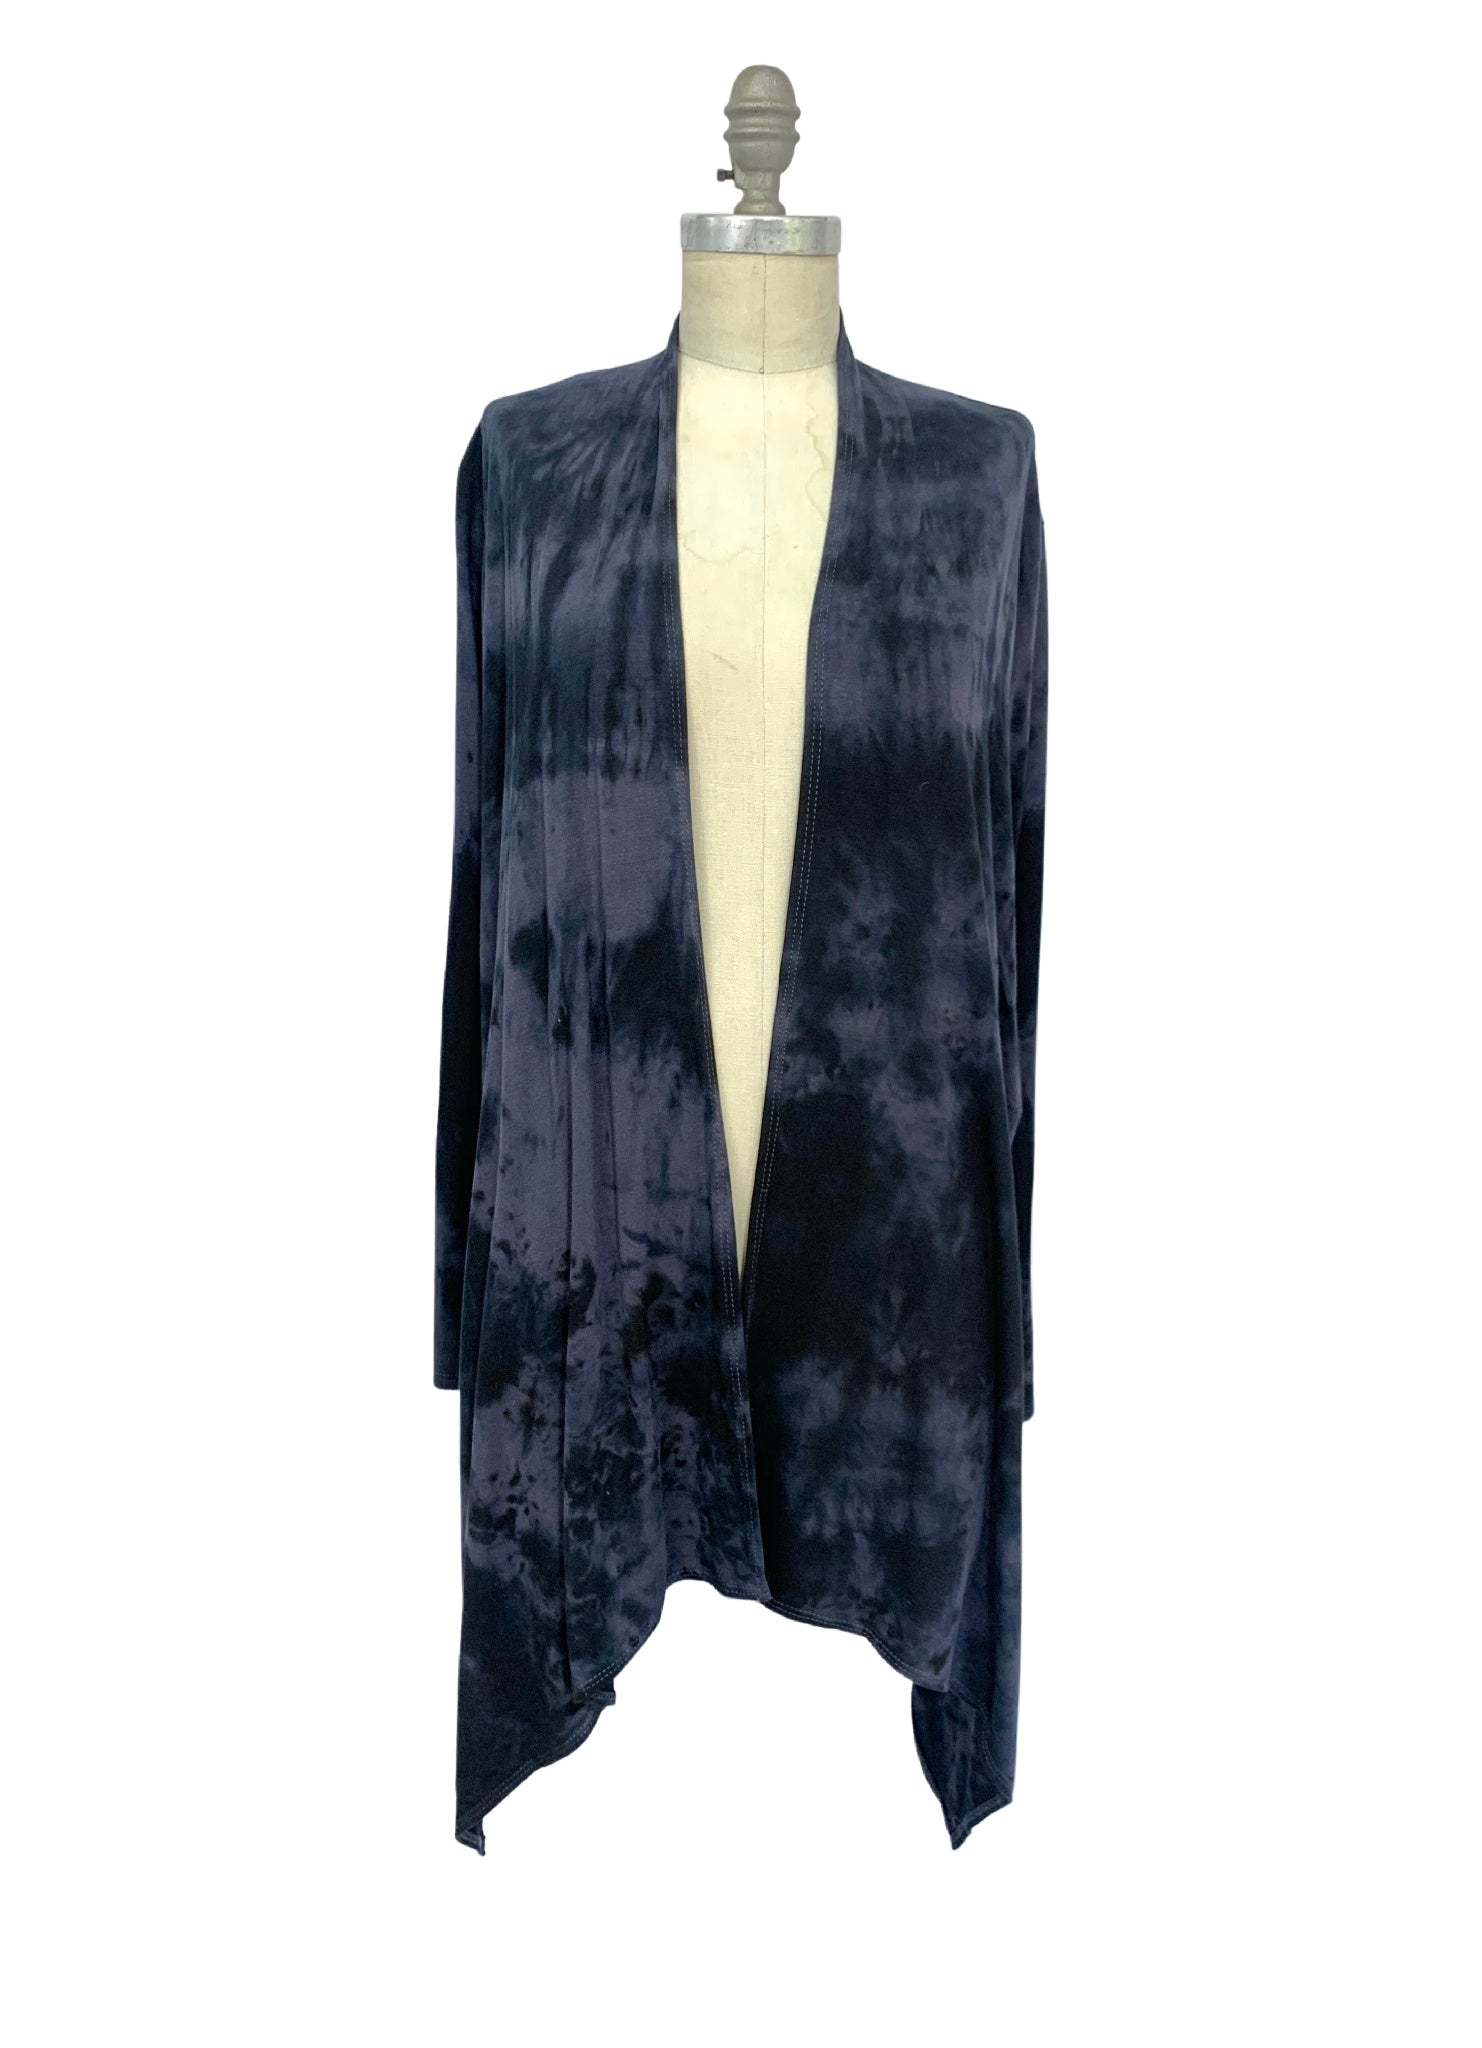 Hand Dyed Drape Front Jacket in Black and Gray